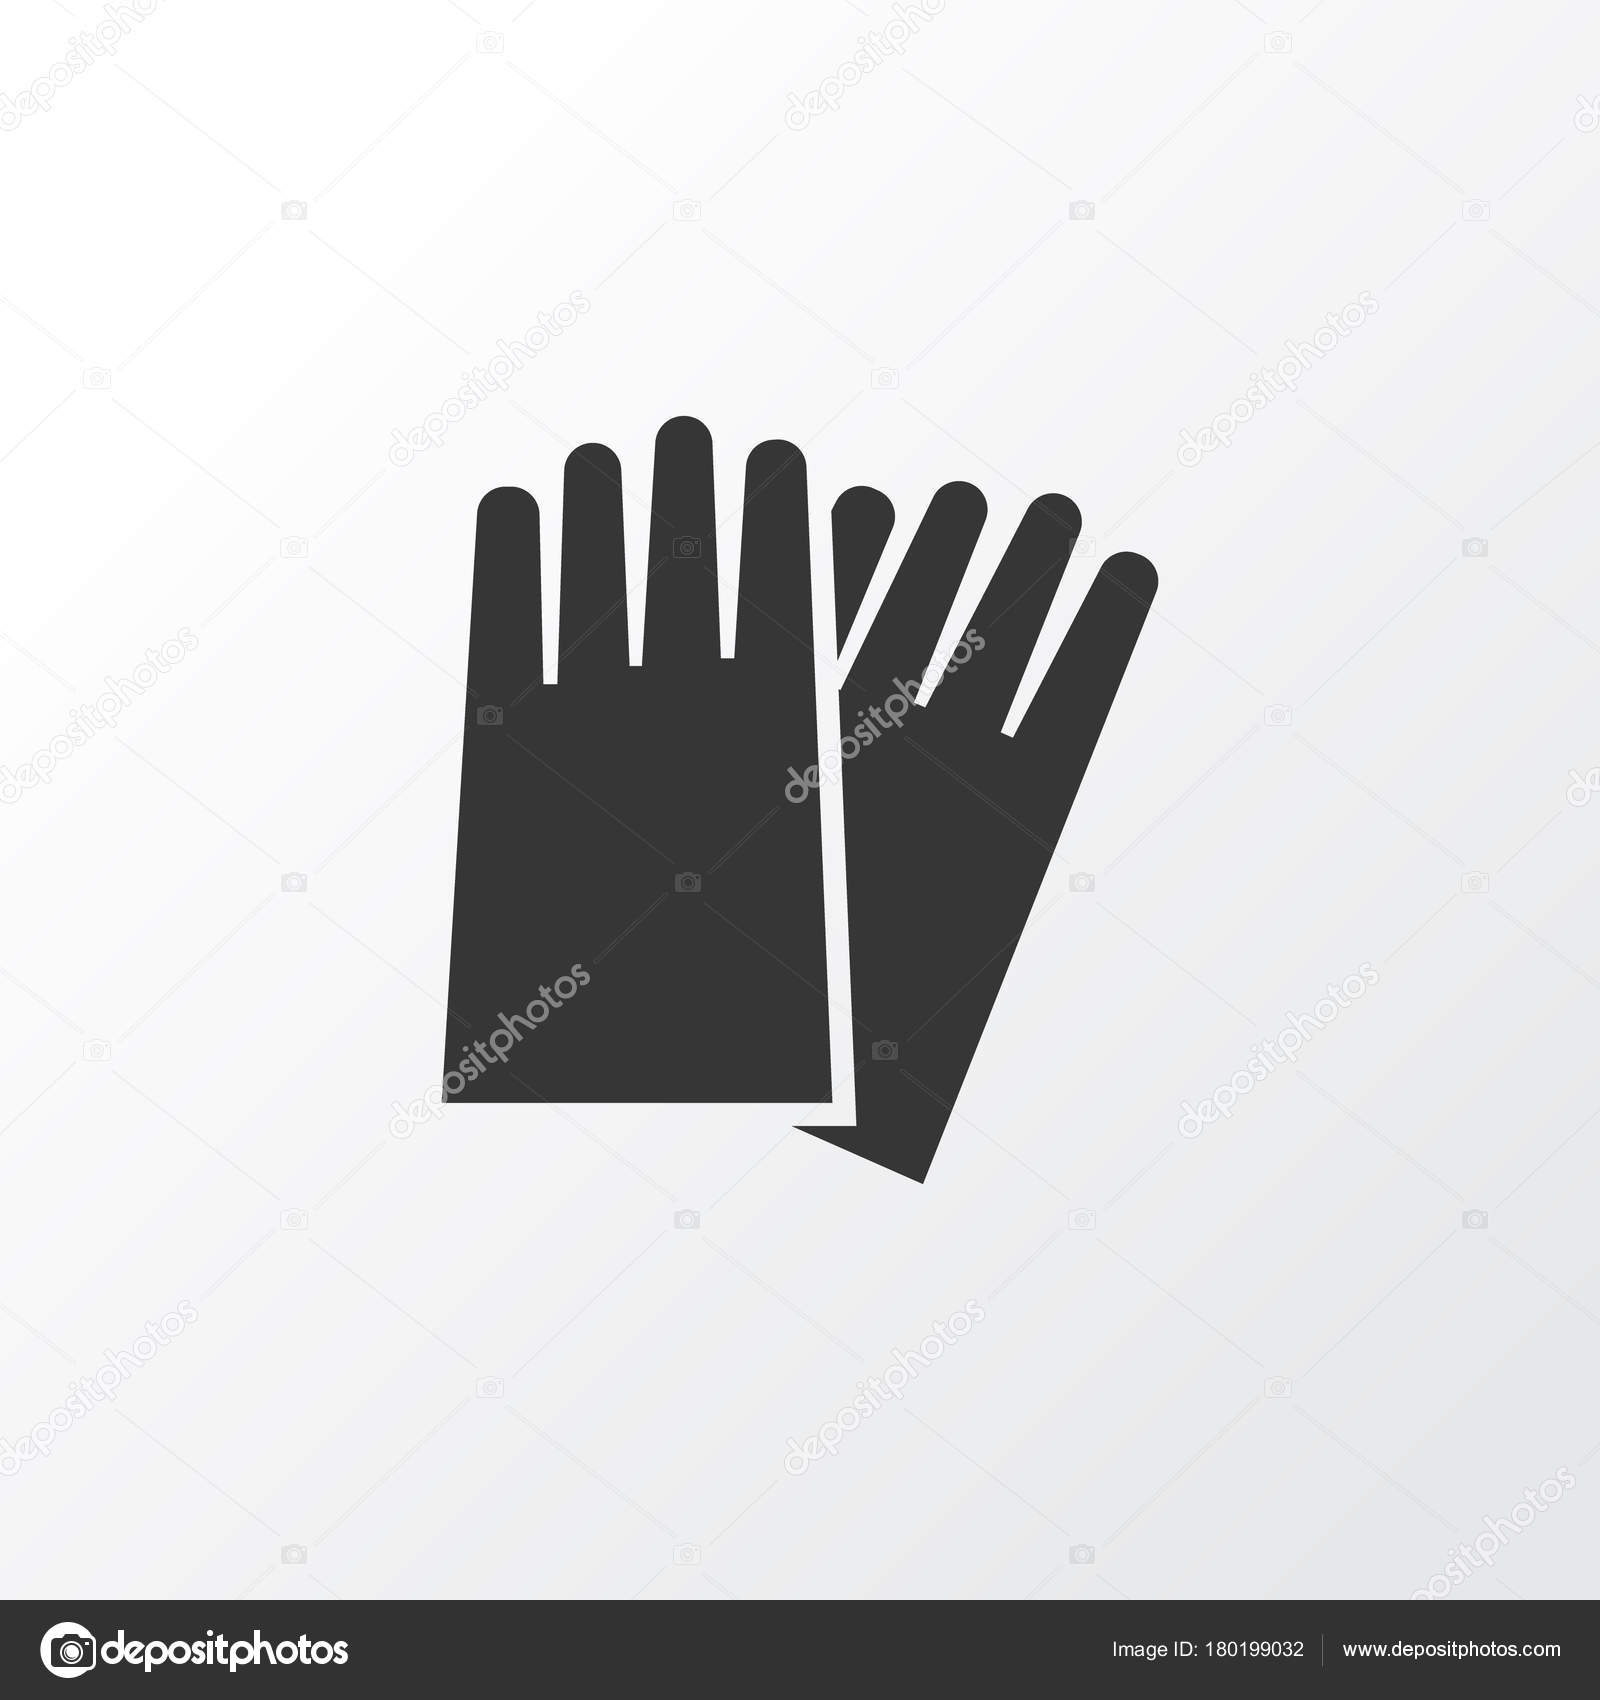 Hand protection icon symbol premium quality isolated latex hand protection icon symbol premium quality isolated latex element in trendy style vector by aalbedouinail biocorpaavc